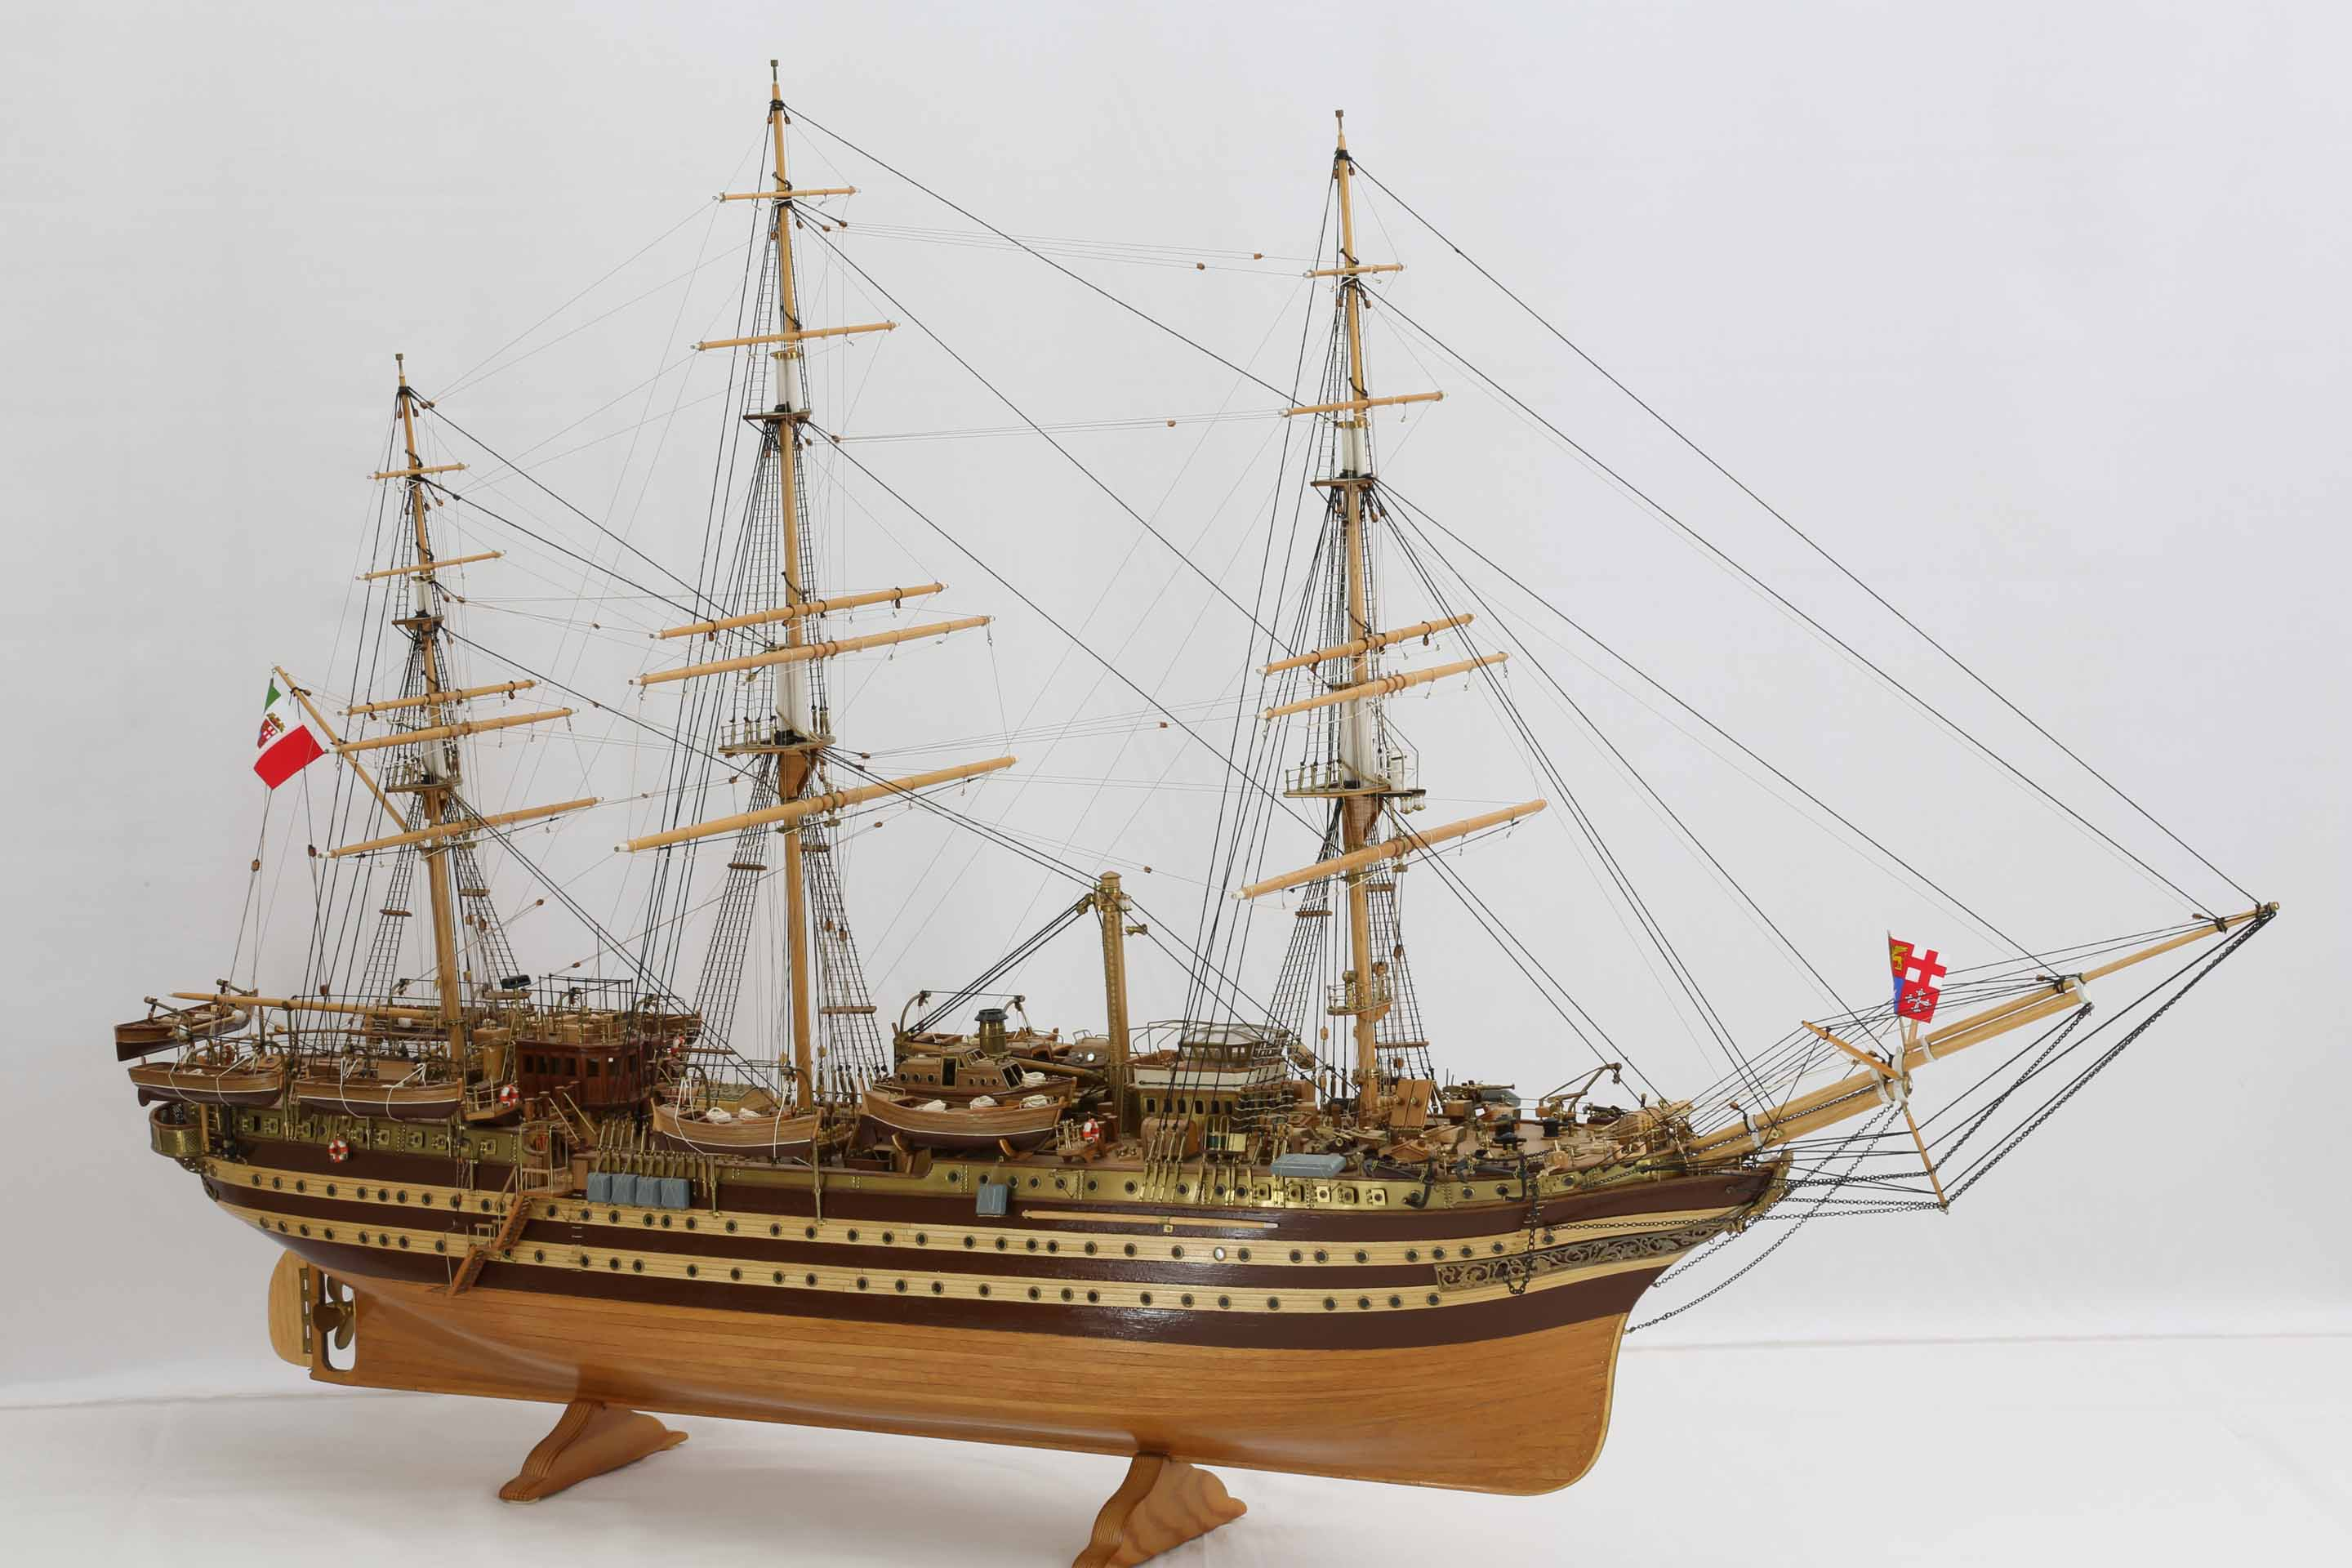 Rumaja: Free access Half model boat plans